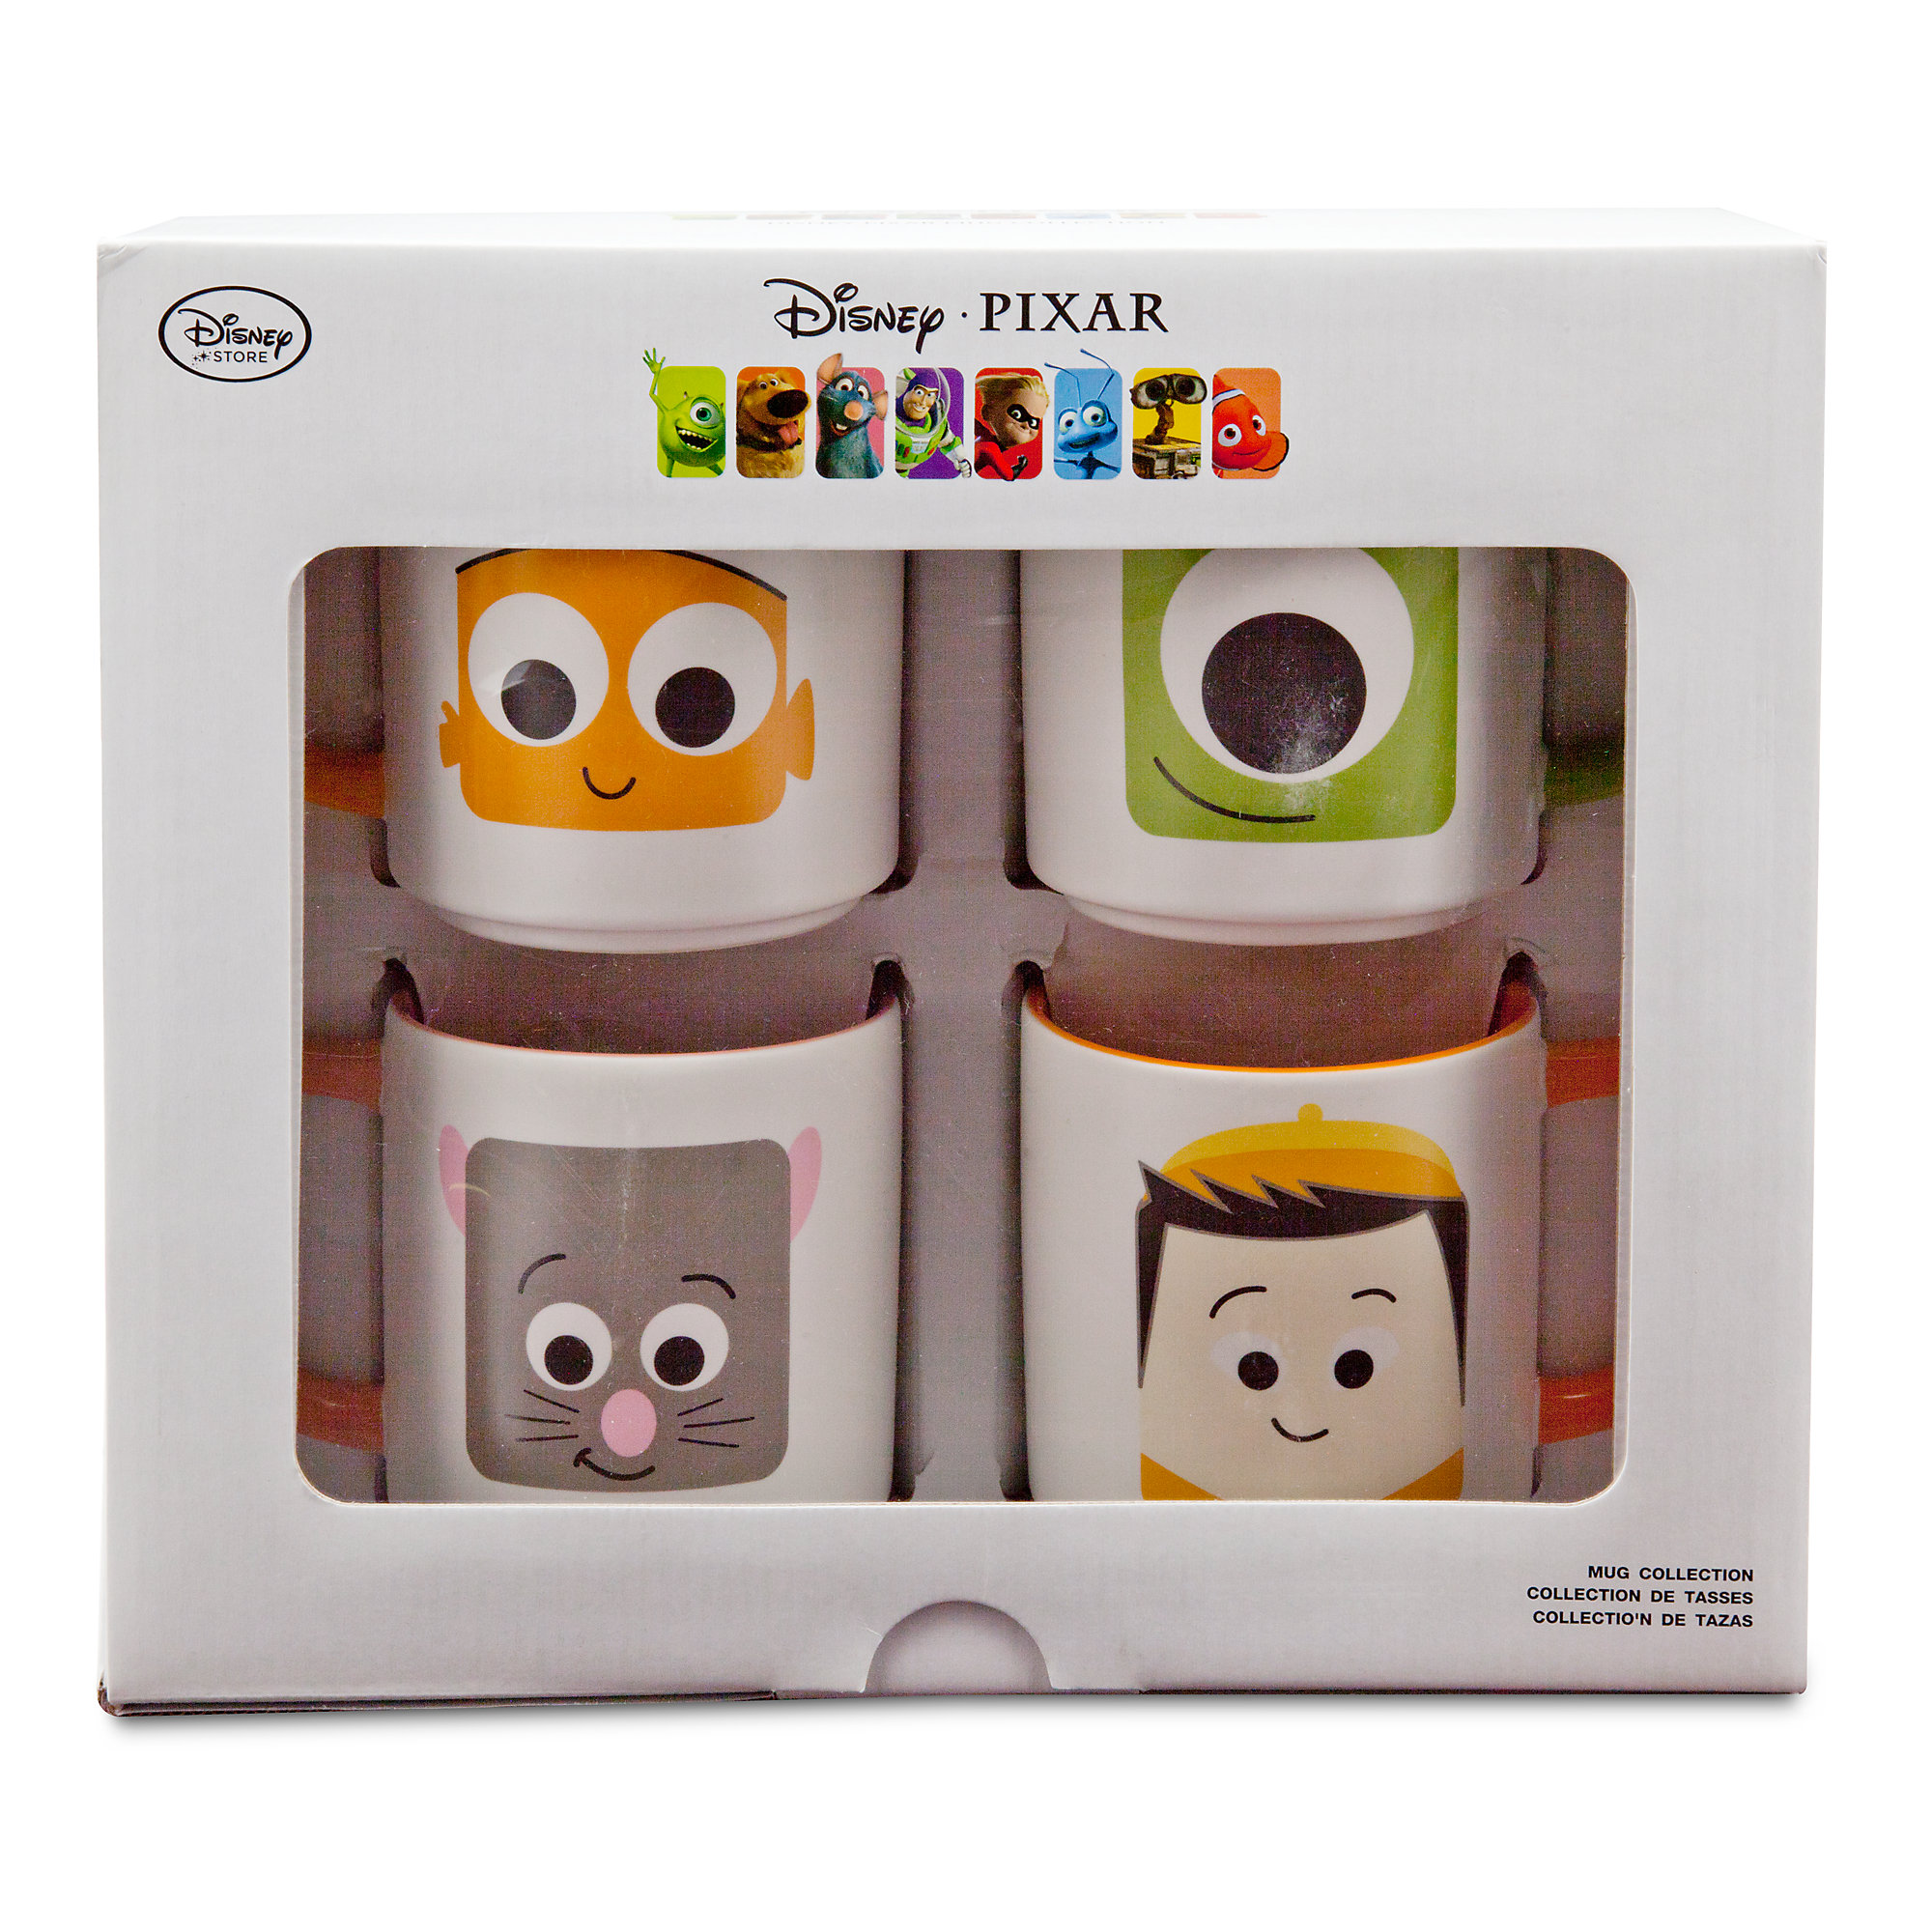 D23 Expo Disney:Pixar Products - Mug Set 1 Packaging